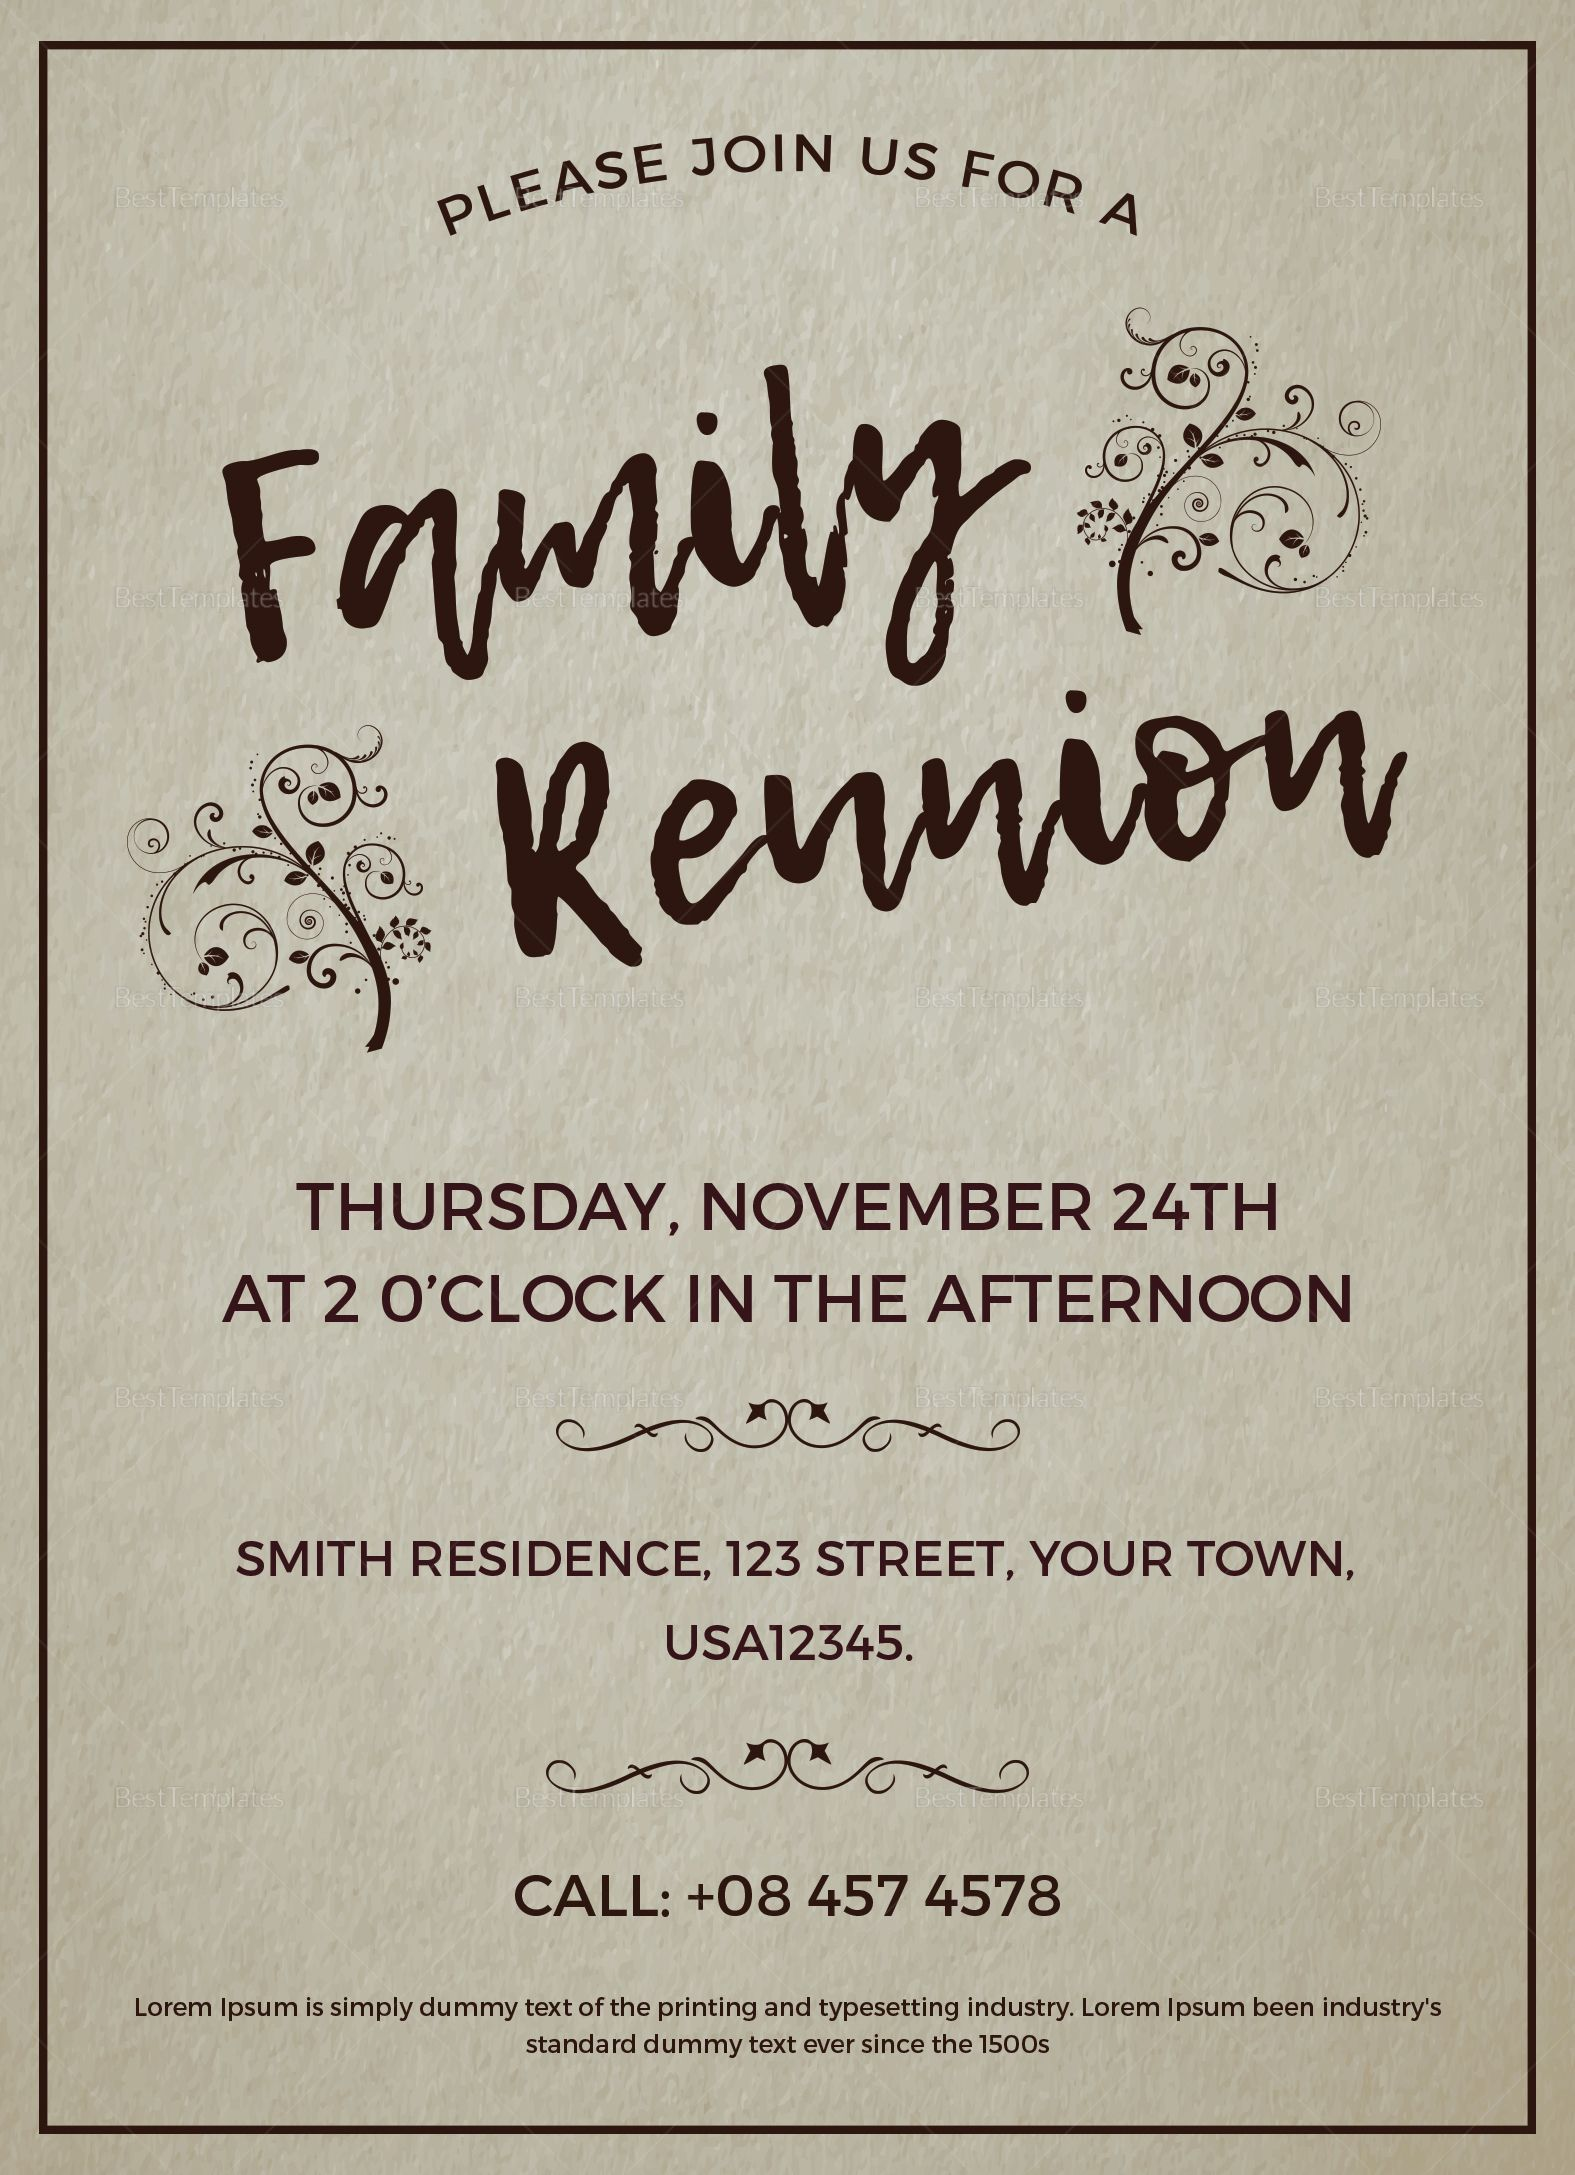 003 Surprising Family Reunion Invitation Card Template Concept Full